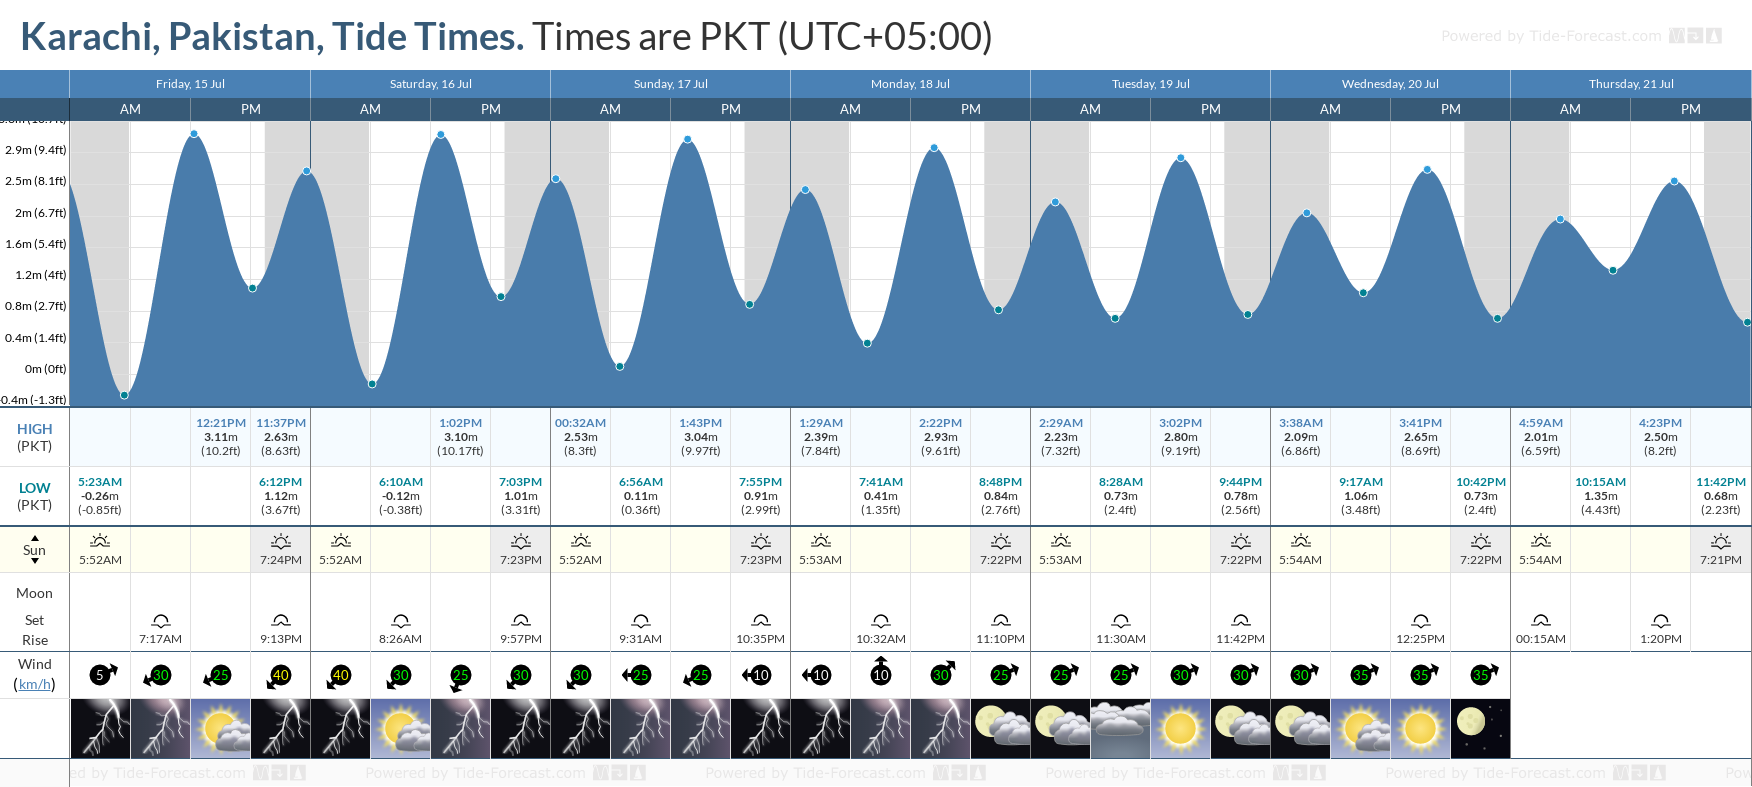 Karachi, Pakistan Tide Chart including high and low tide tide times for the next 7 days